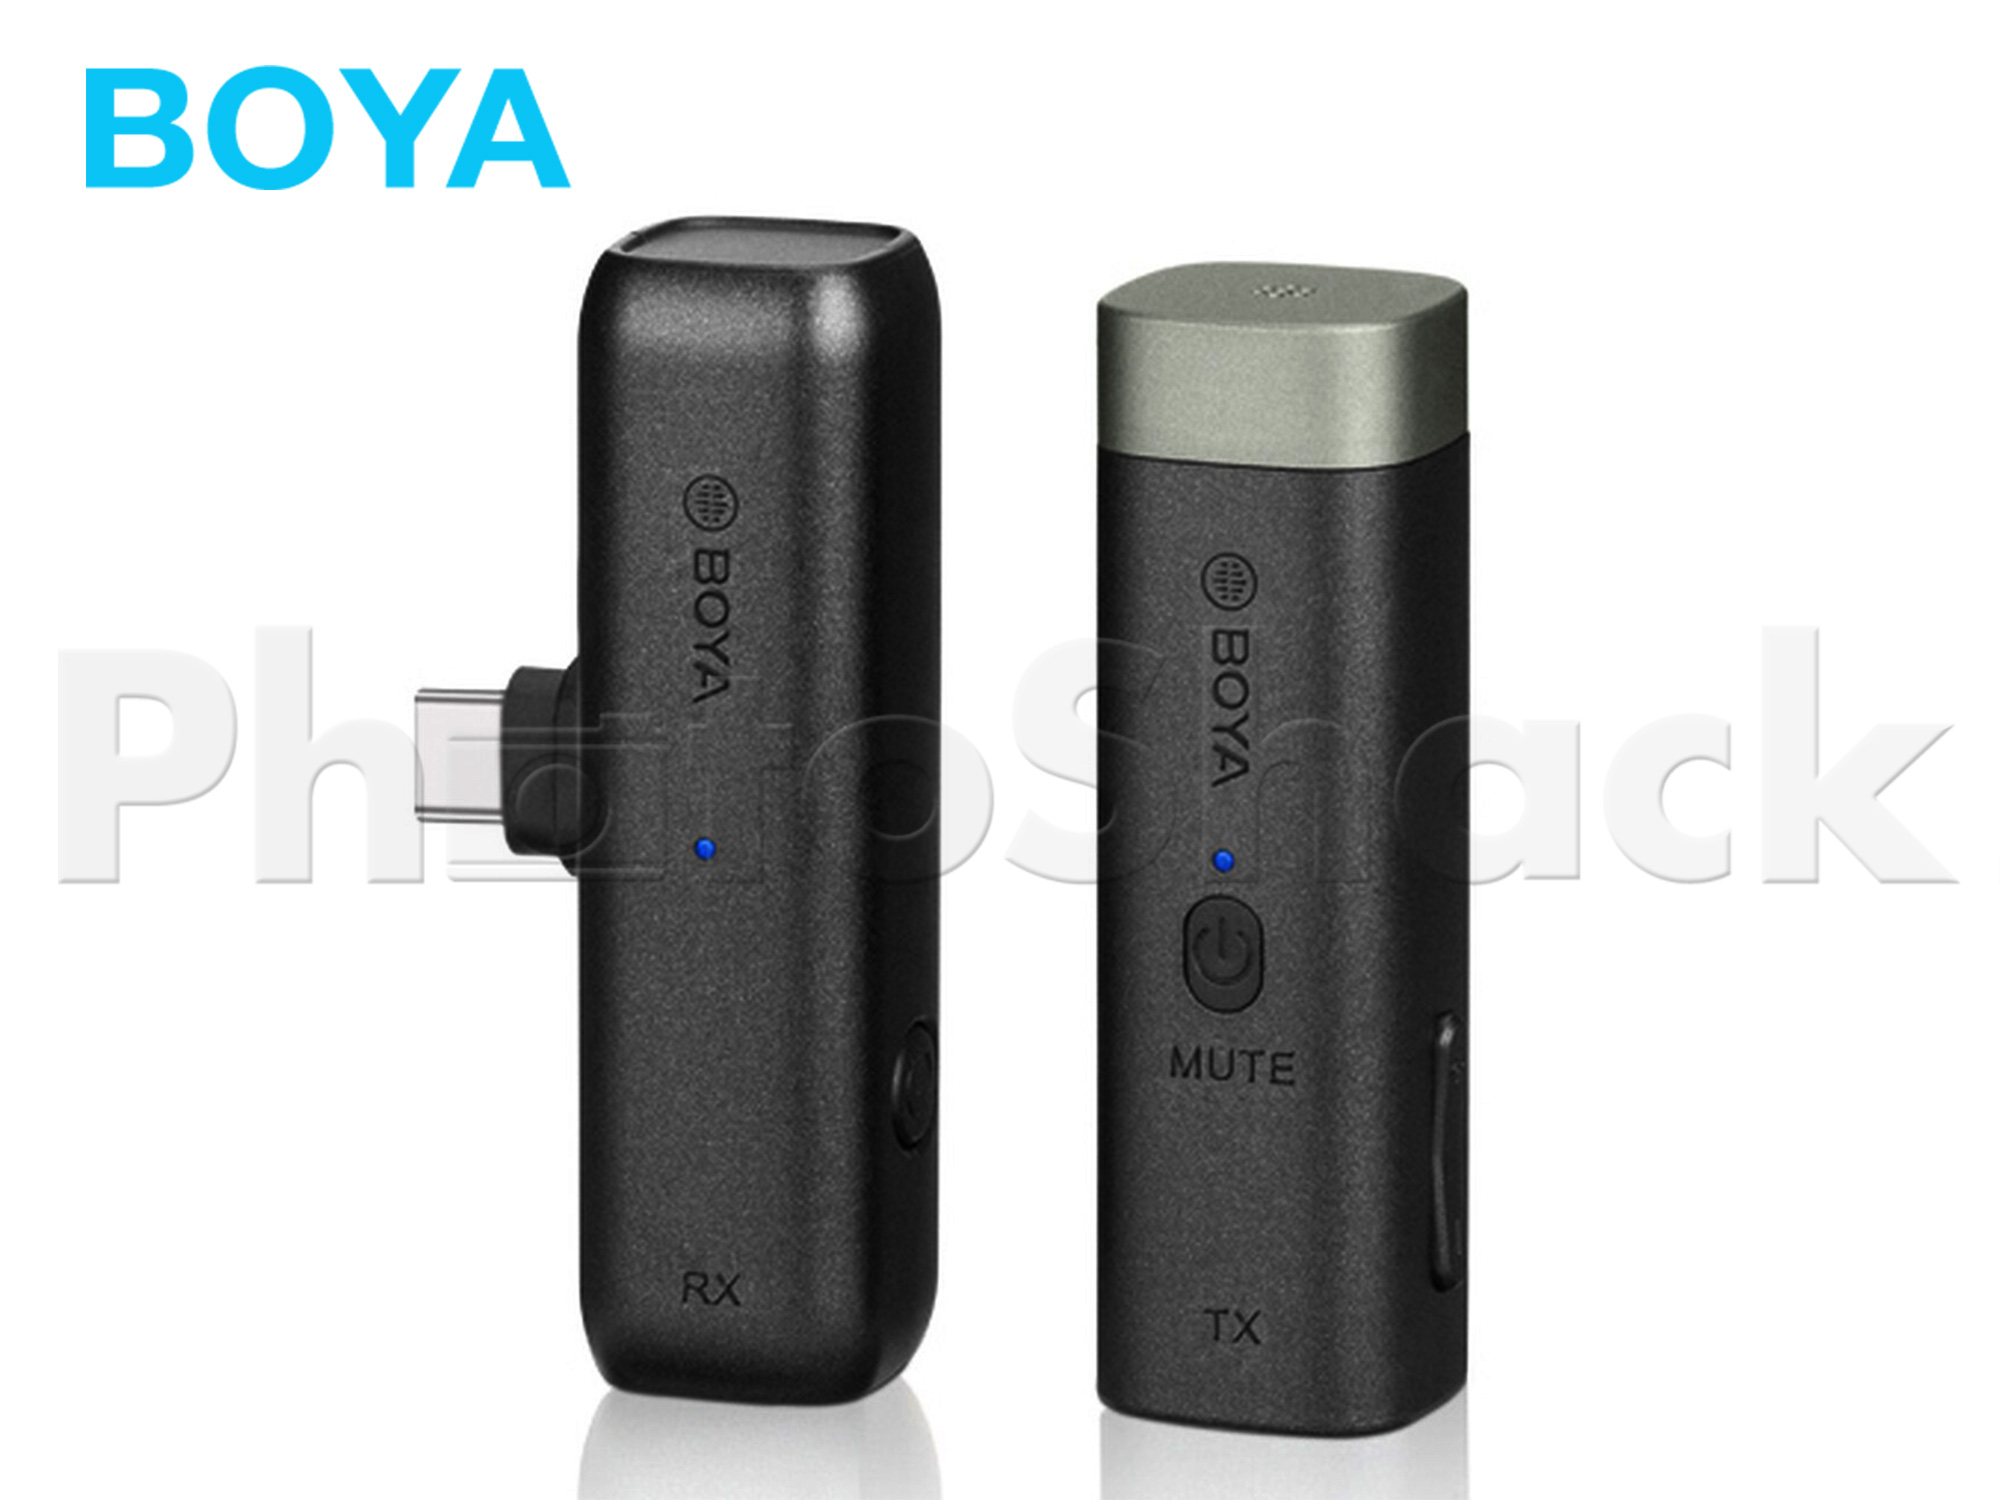 BOYA BY-WM3U Digital True-Wireless Microphone System for Android Devices